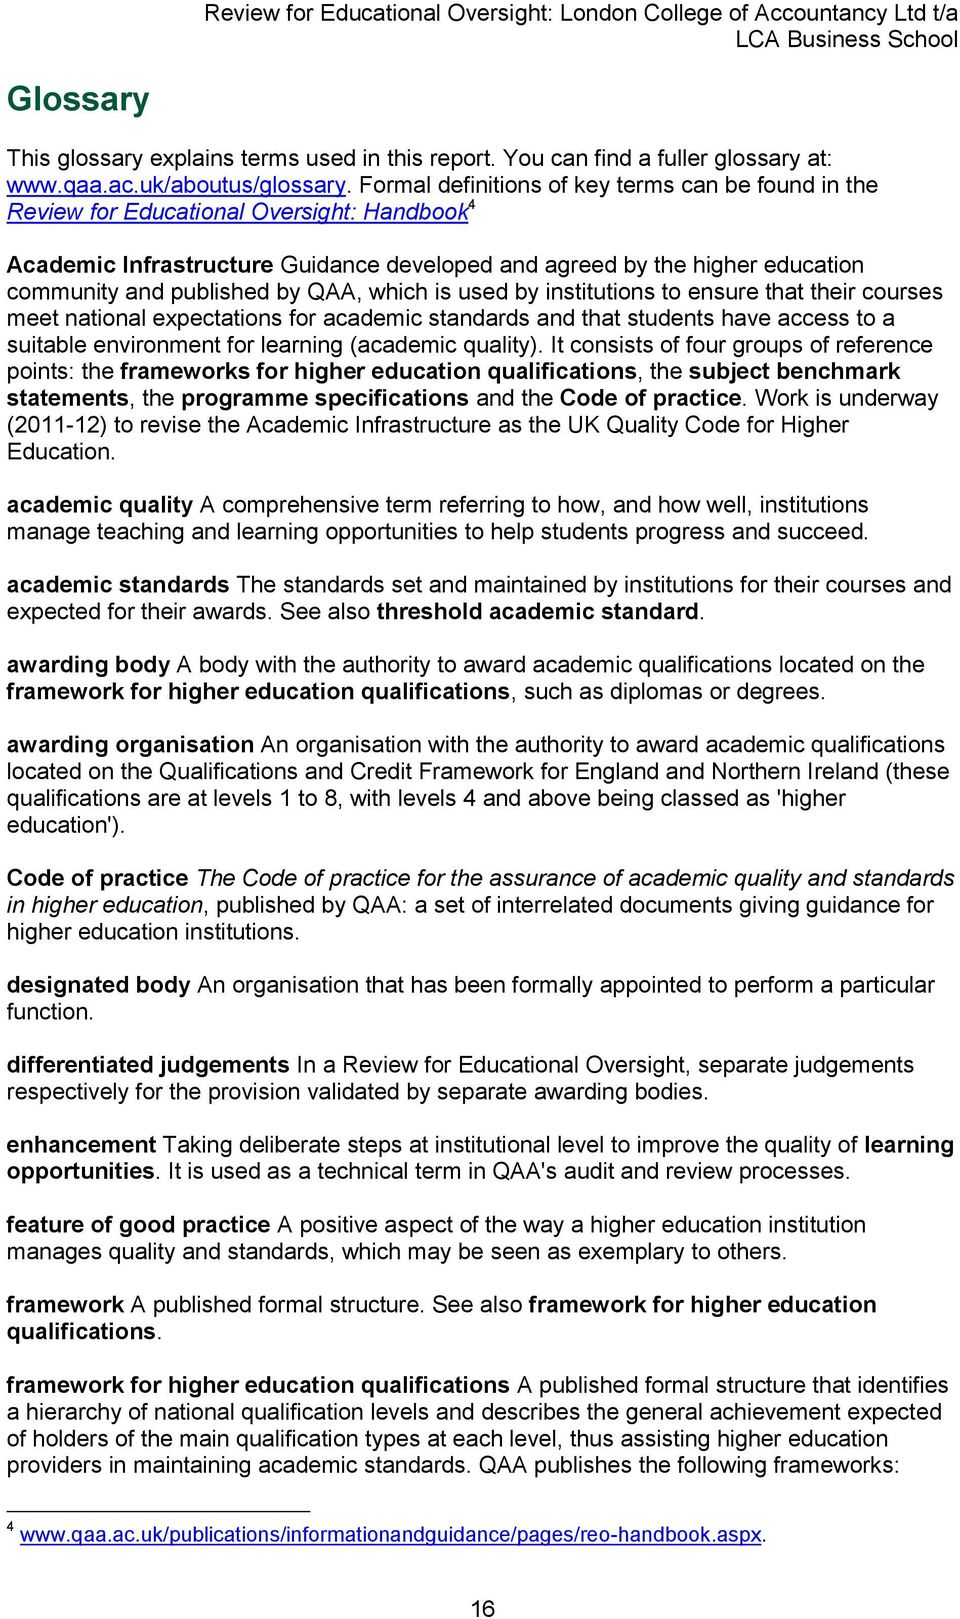 by QAA, which is used by institutions to ensure that their courses meet national expectations for academic standards and that students have access to a suitable environment for learning (academic